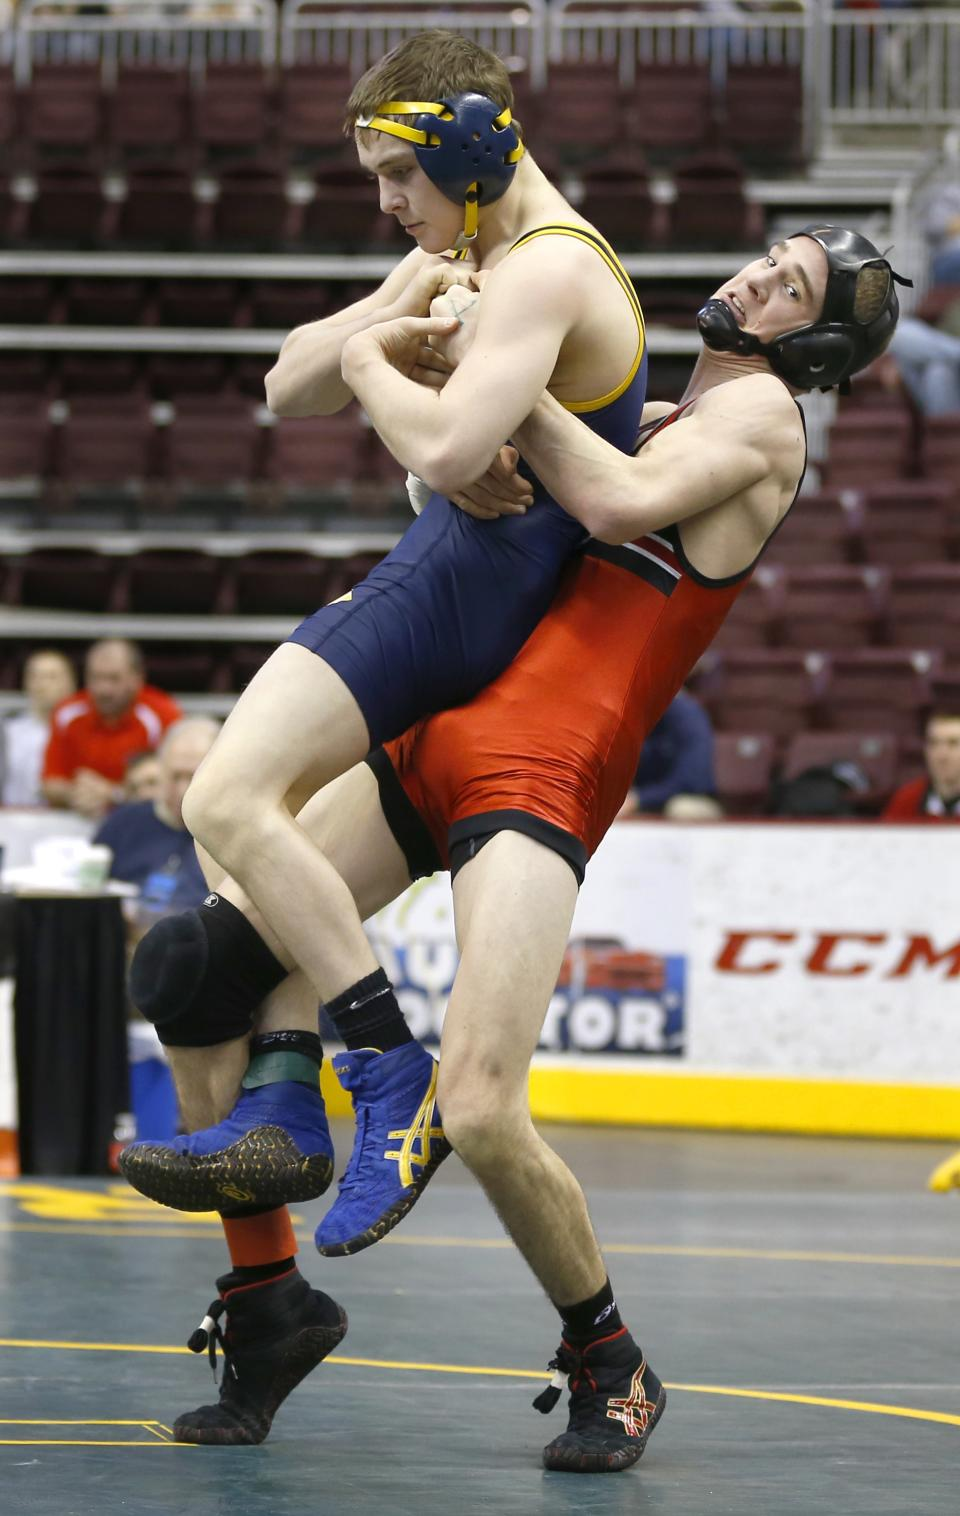 Northwestern's Matt Wheeler, right, tries to take down Saegertown's Tyler Vath in a 120-pound match at the PIAA Class AA high school wrestling championships on Friday, March 8, 2013, in Hershey, Pa. (AP Photo/Keith Srakocic)